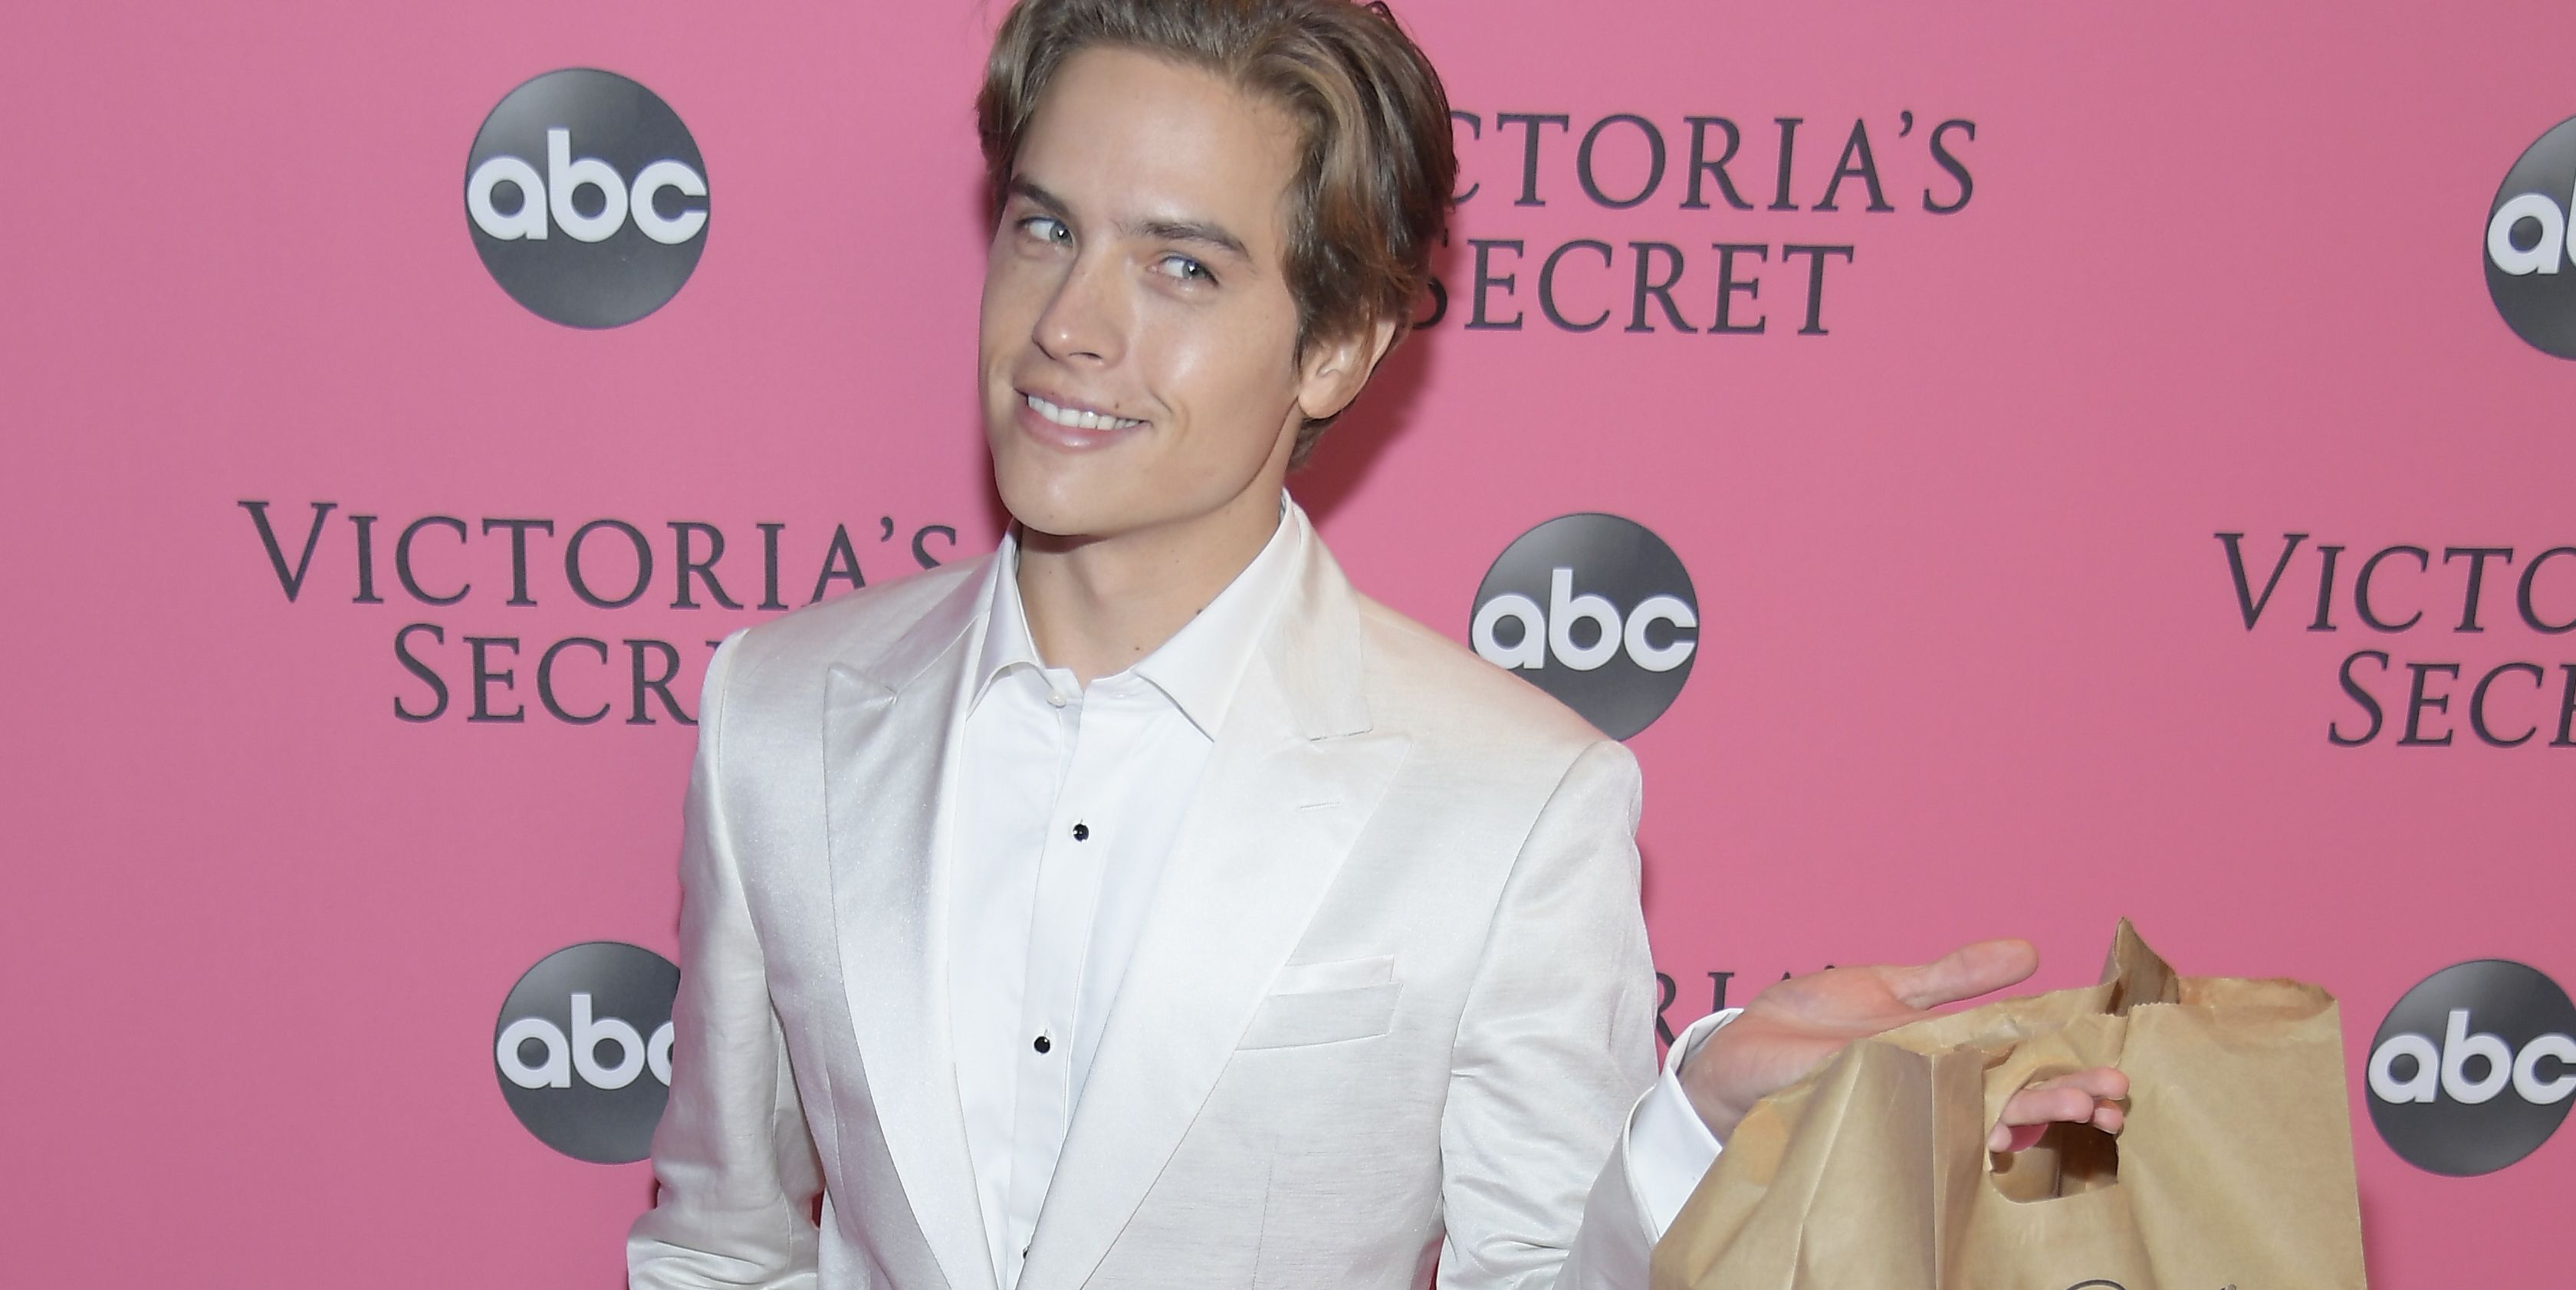 LOL, Dylan Sprouse Just Brought His Victoria's Secret Model Girlfriend Fast Food at the Show